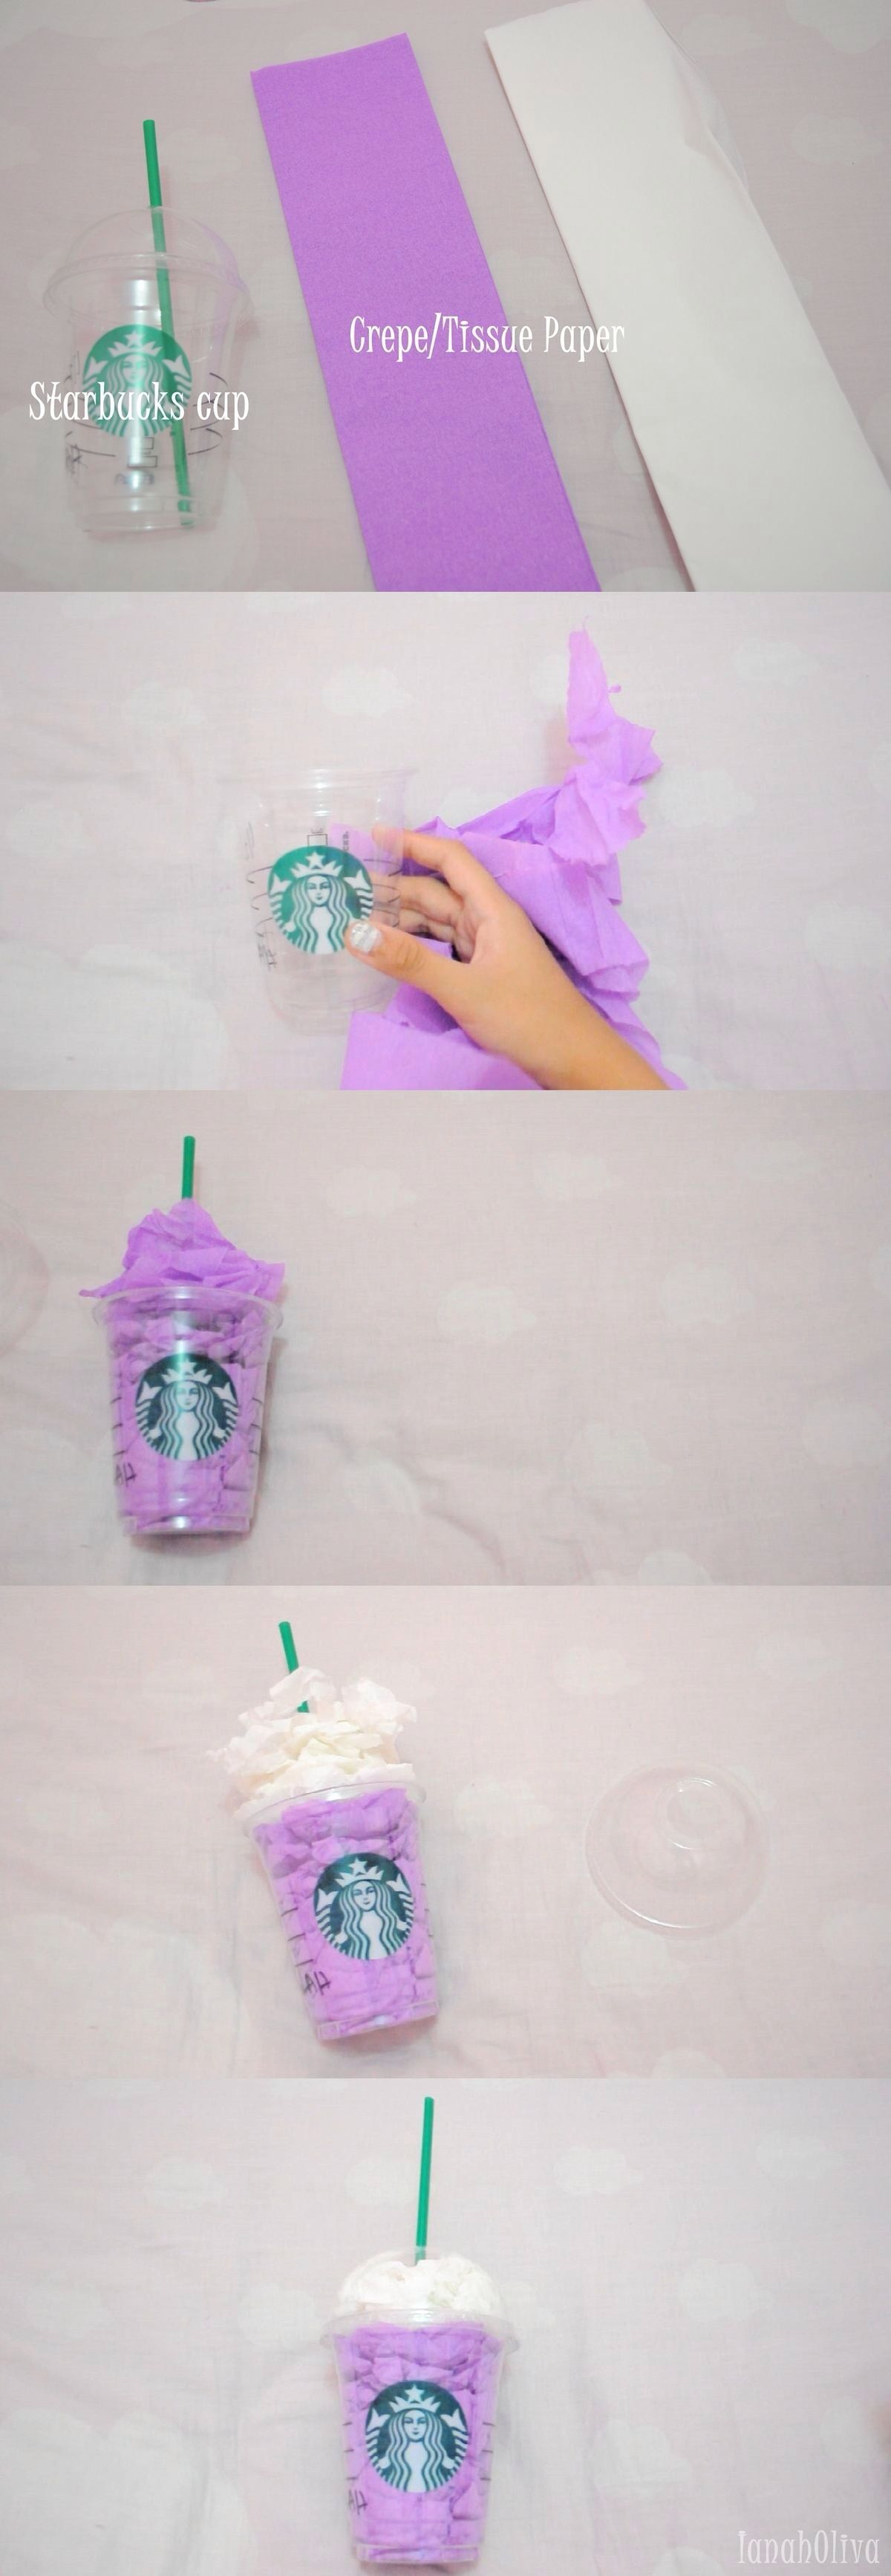 Diy room decor starbucks cup diy craft for teens diy for Easy diy room decor pinterest